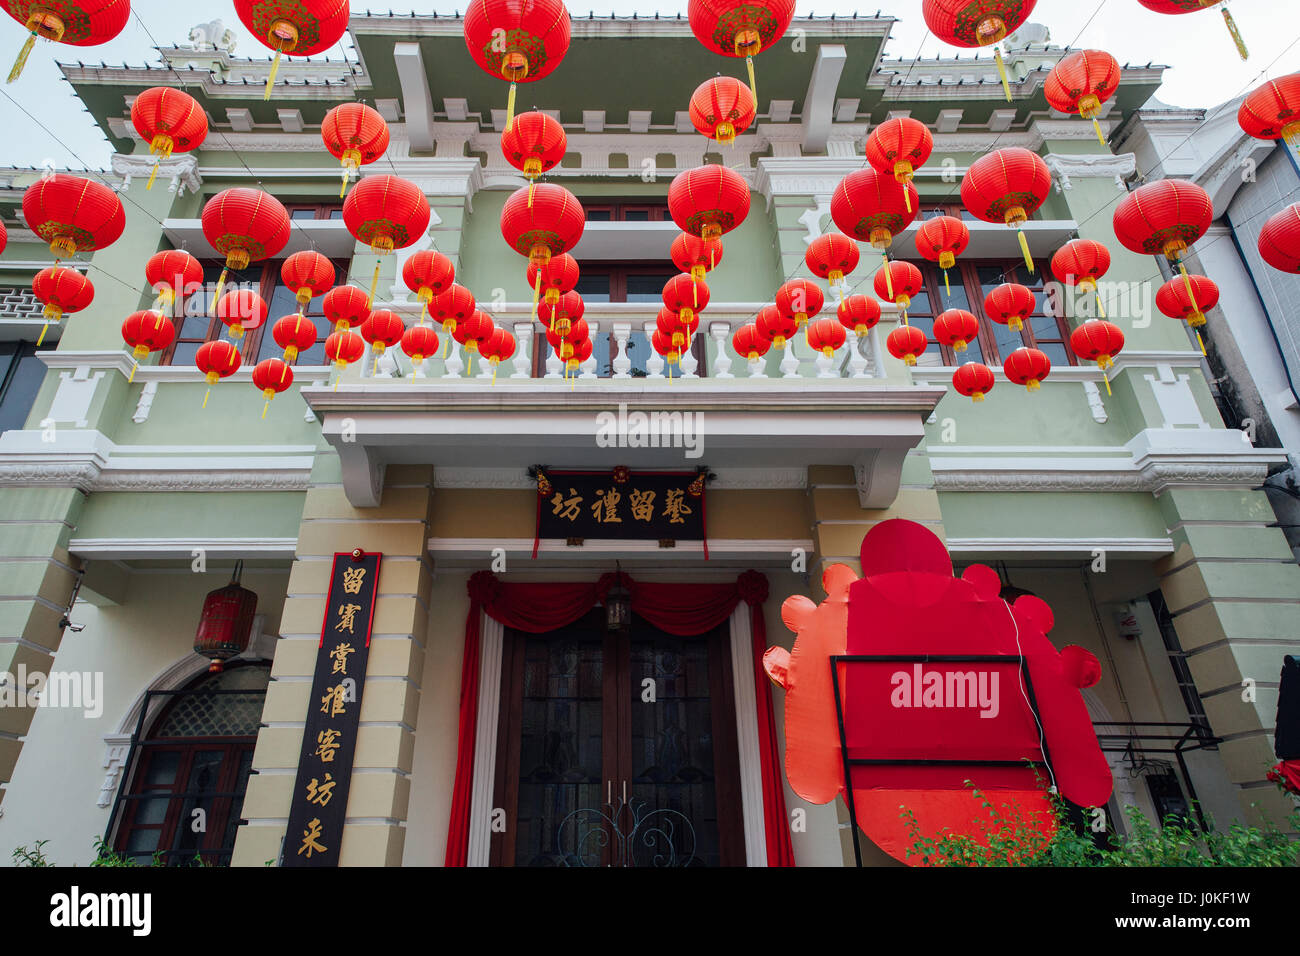 George Town, Malaysia - March 24, 2016: Yap Kongsi clan house decorated with chinese red lanterns, Armenian Street, - Stock Image